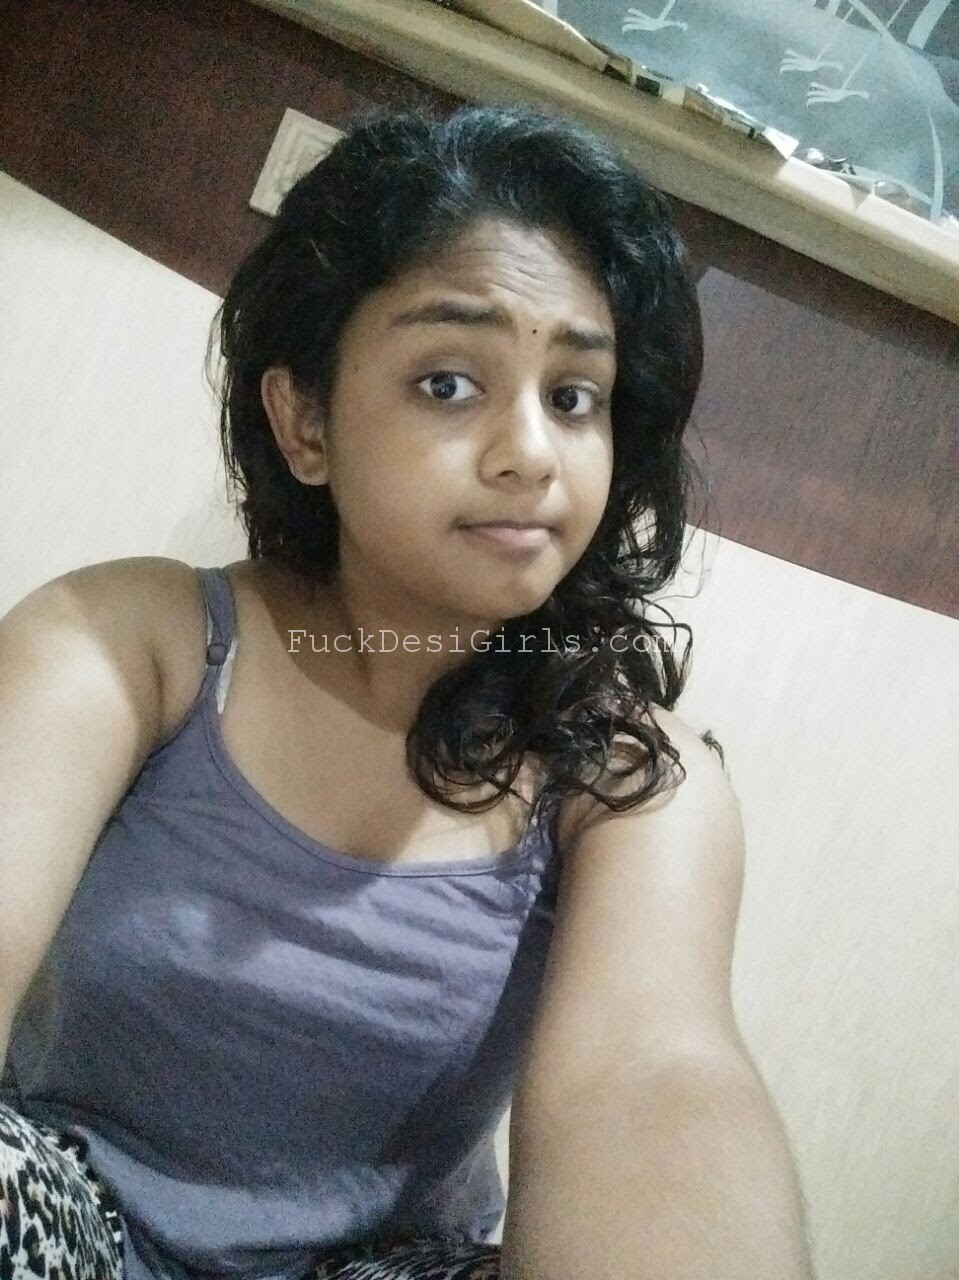 from Dylan tamil girls mouth nude images